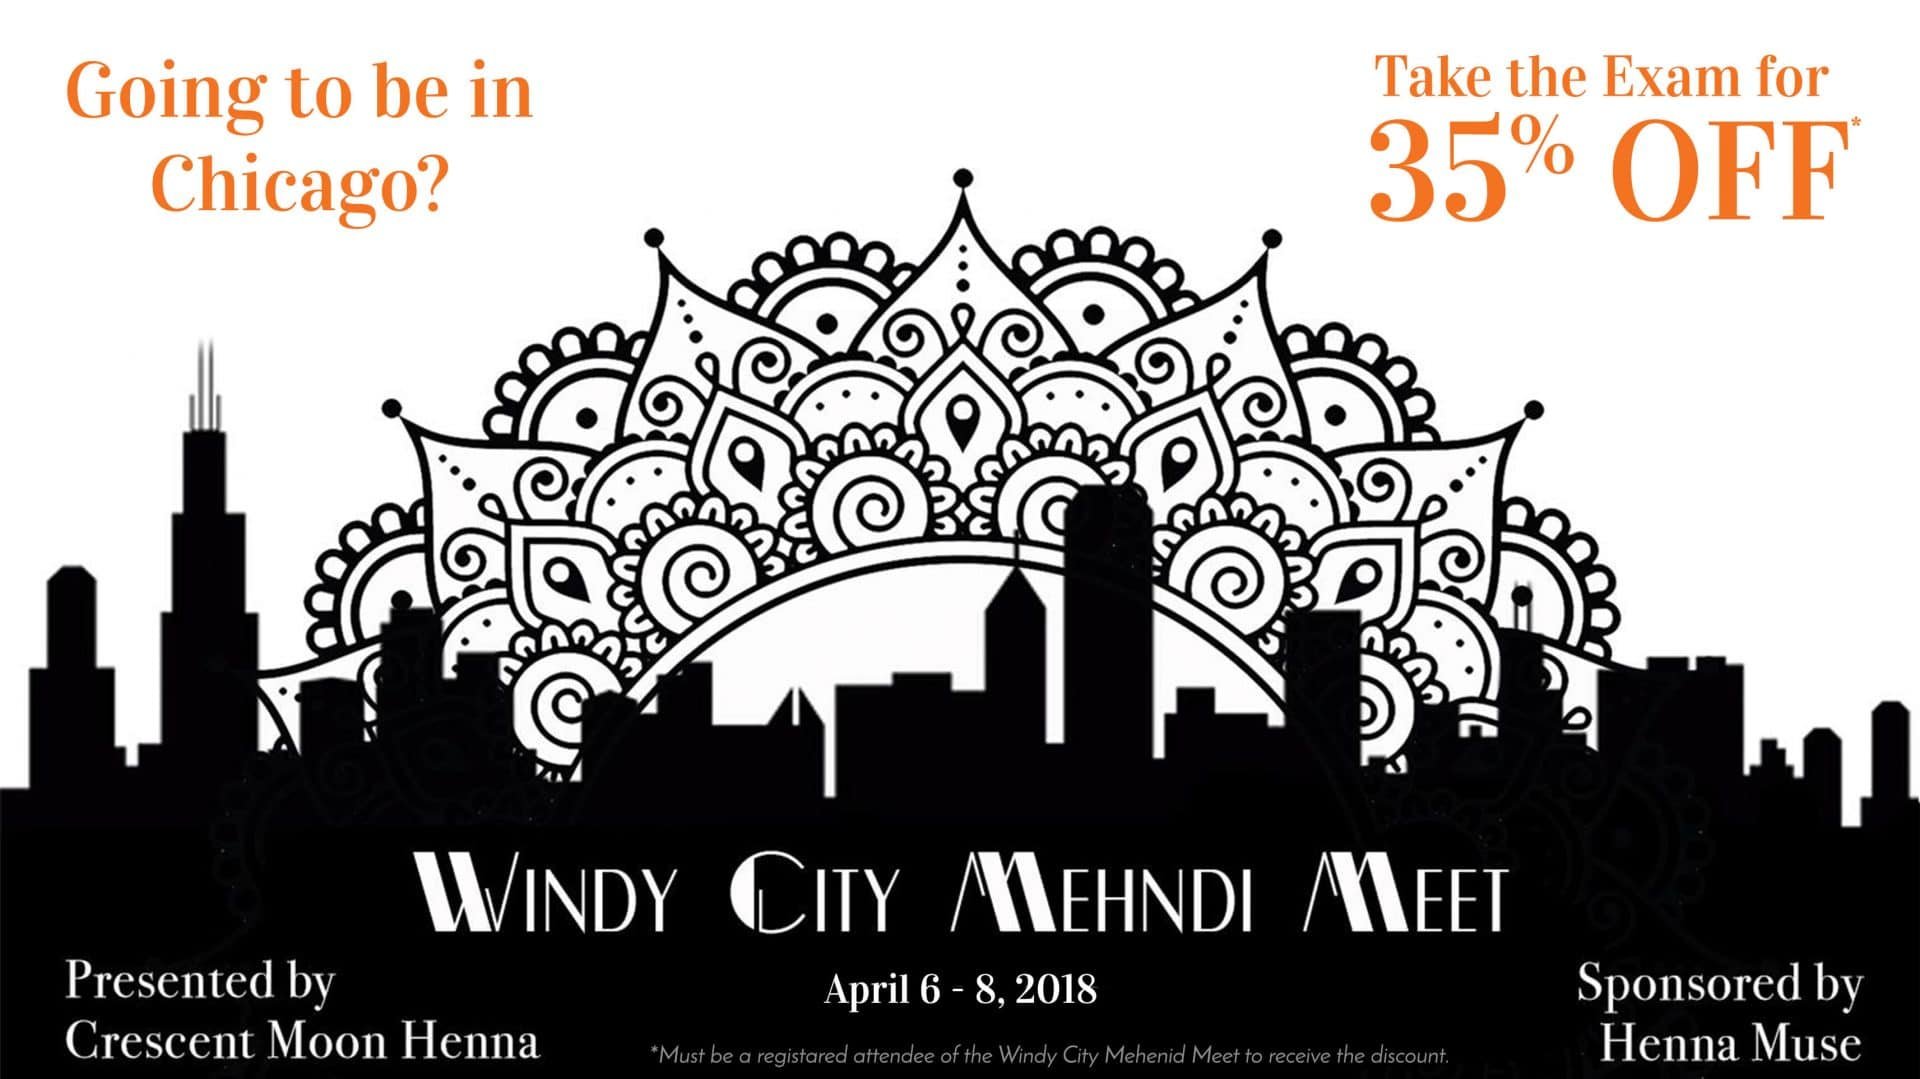 Windy City Mehndi Meet